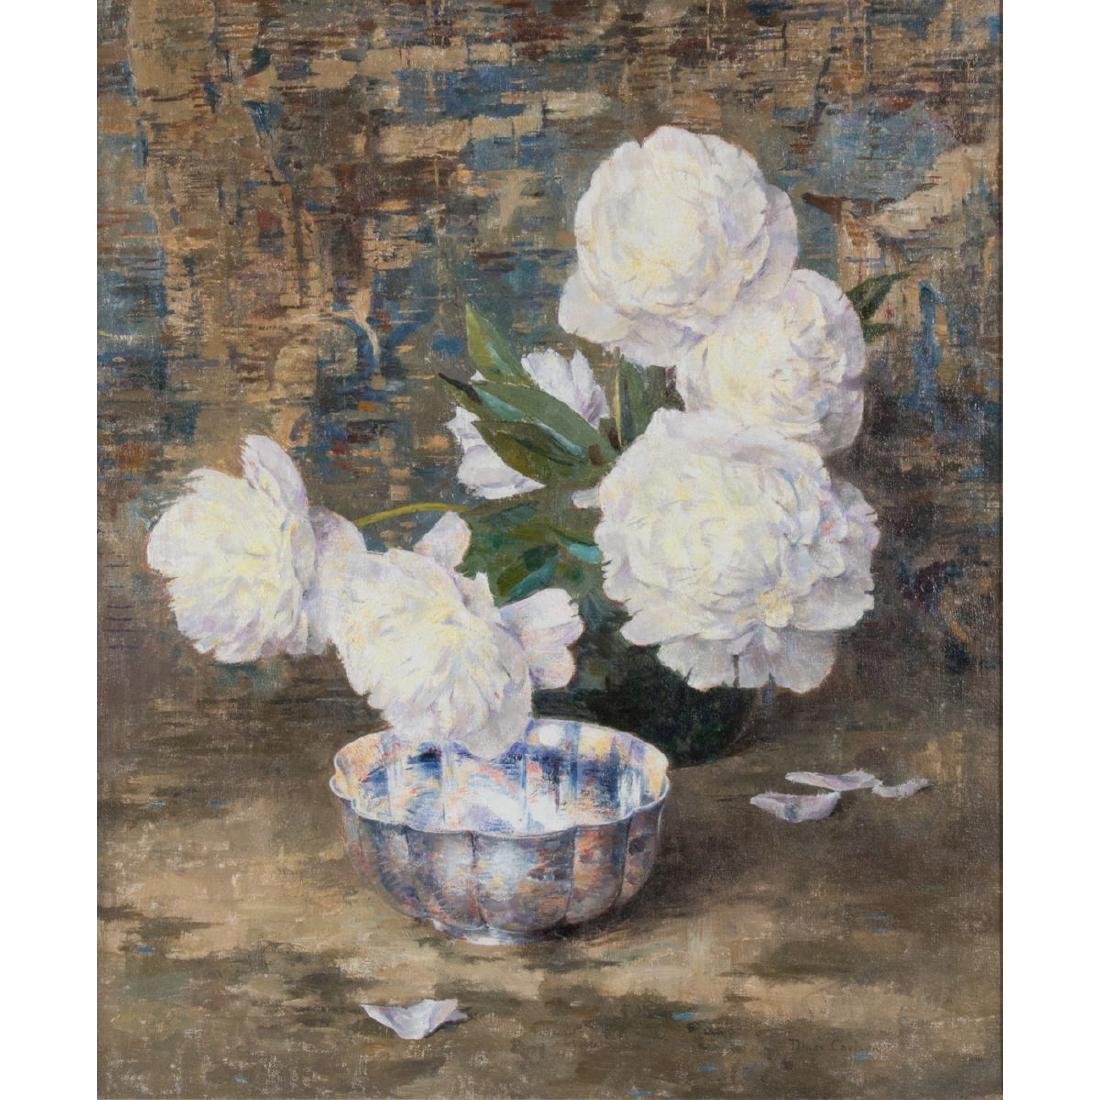 Dines Carlsen (1901-1966) Still Life with Peonies, Oil